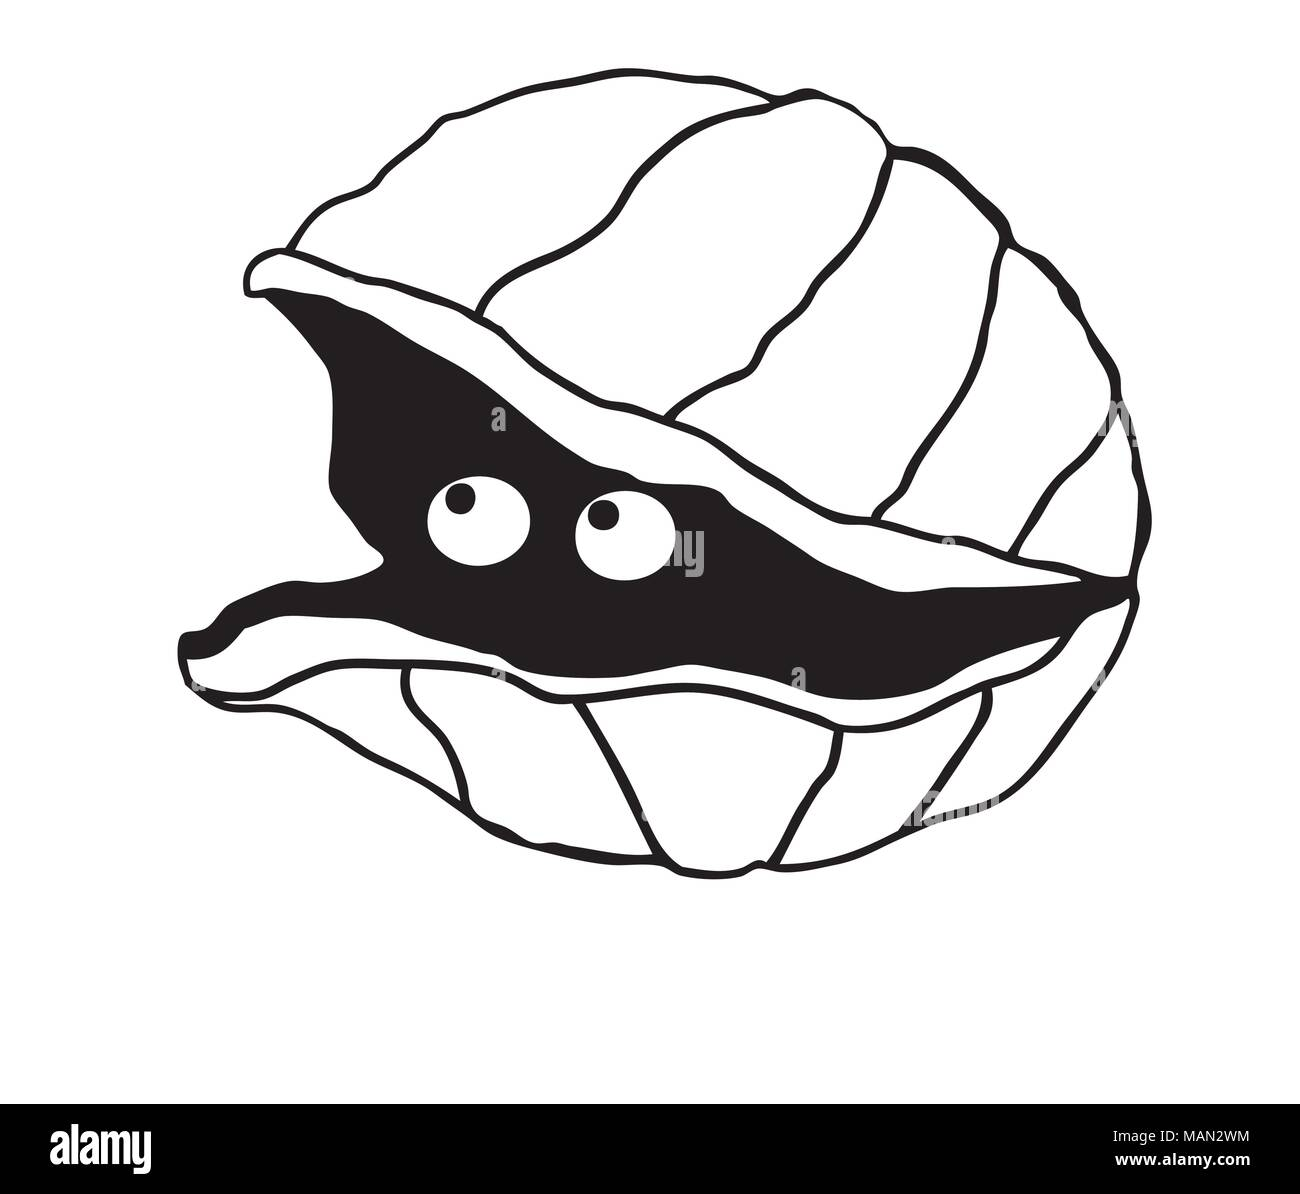 Cute illustration of a simple clam with eyes look out of ...